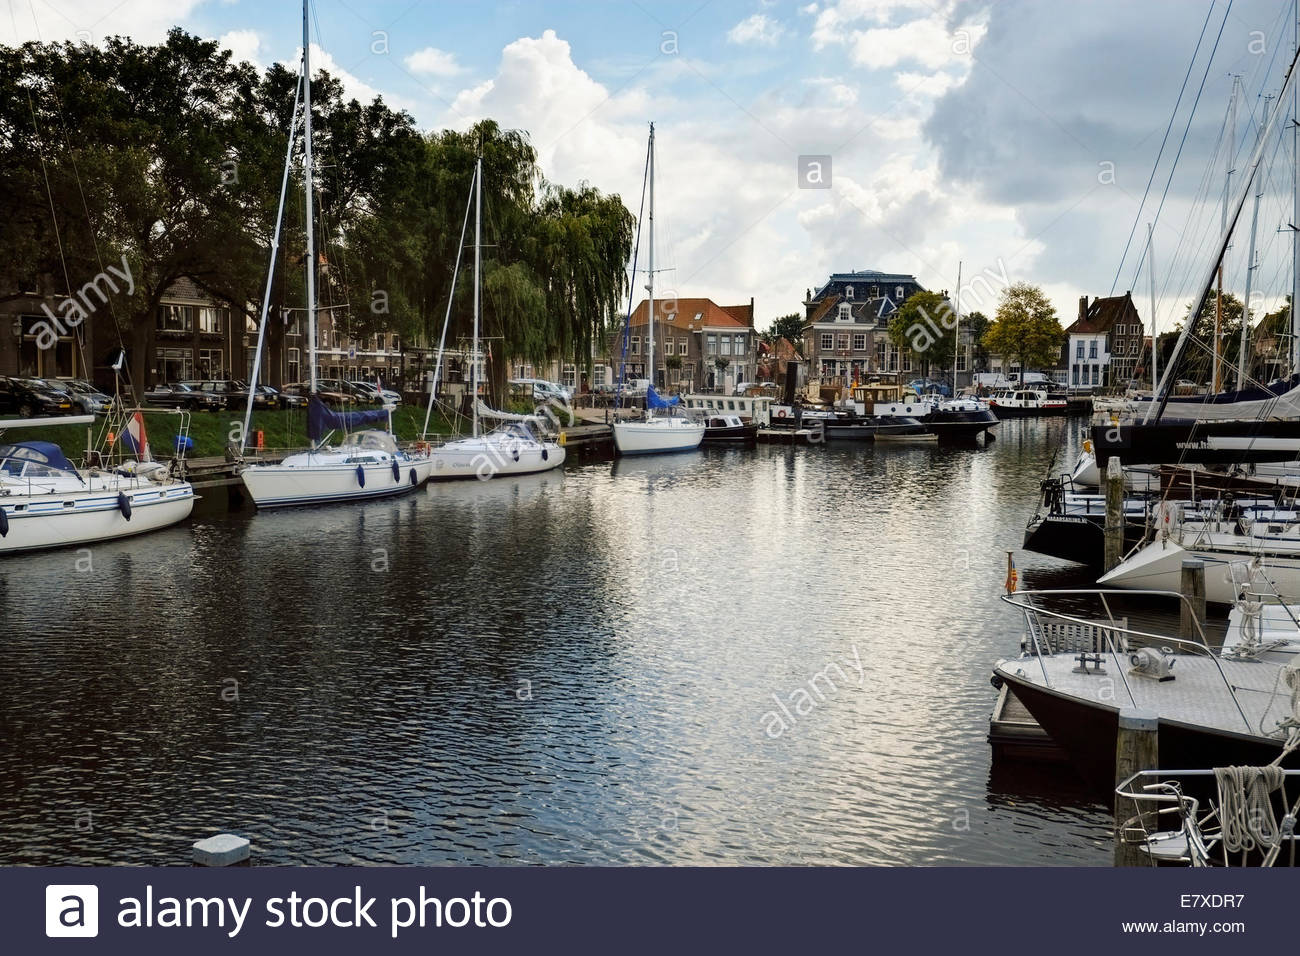 Sloops, houseboats and other personal watercraft are harbored in Enkhuizen's Oude Haven, or Old Harbor, near - Stock Image